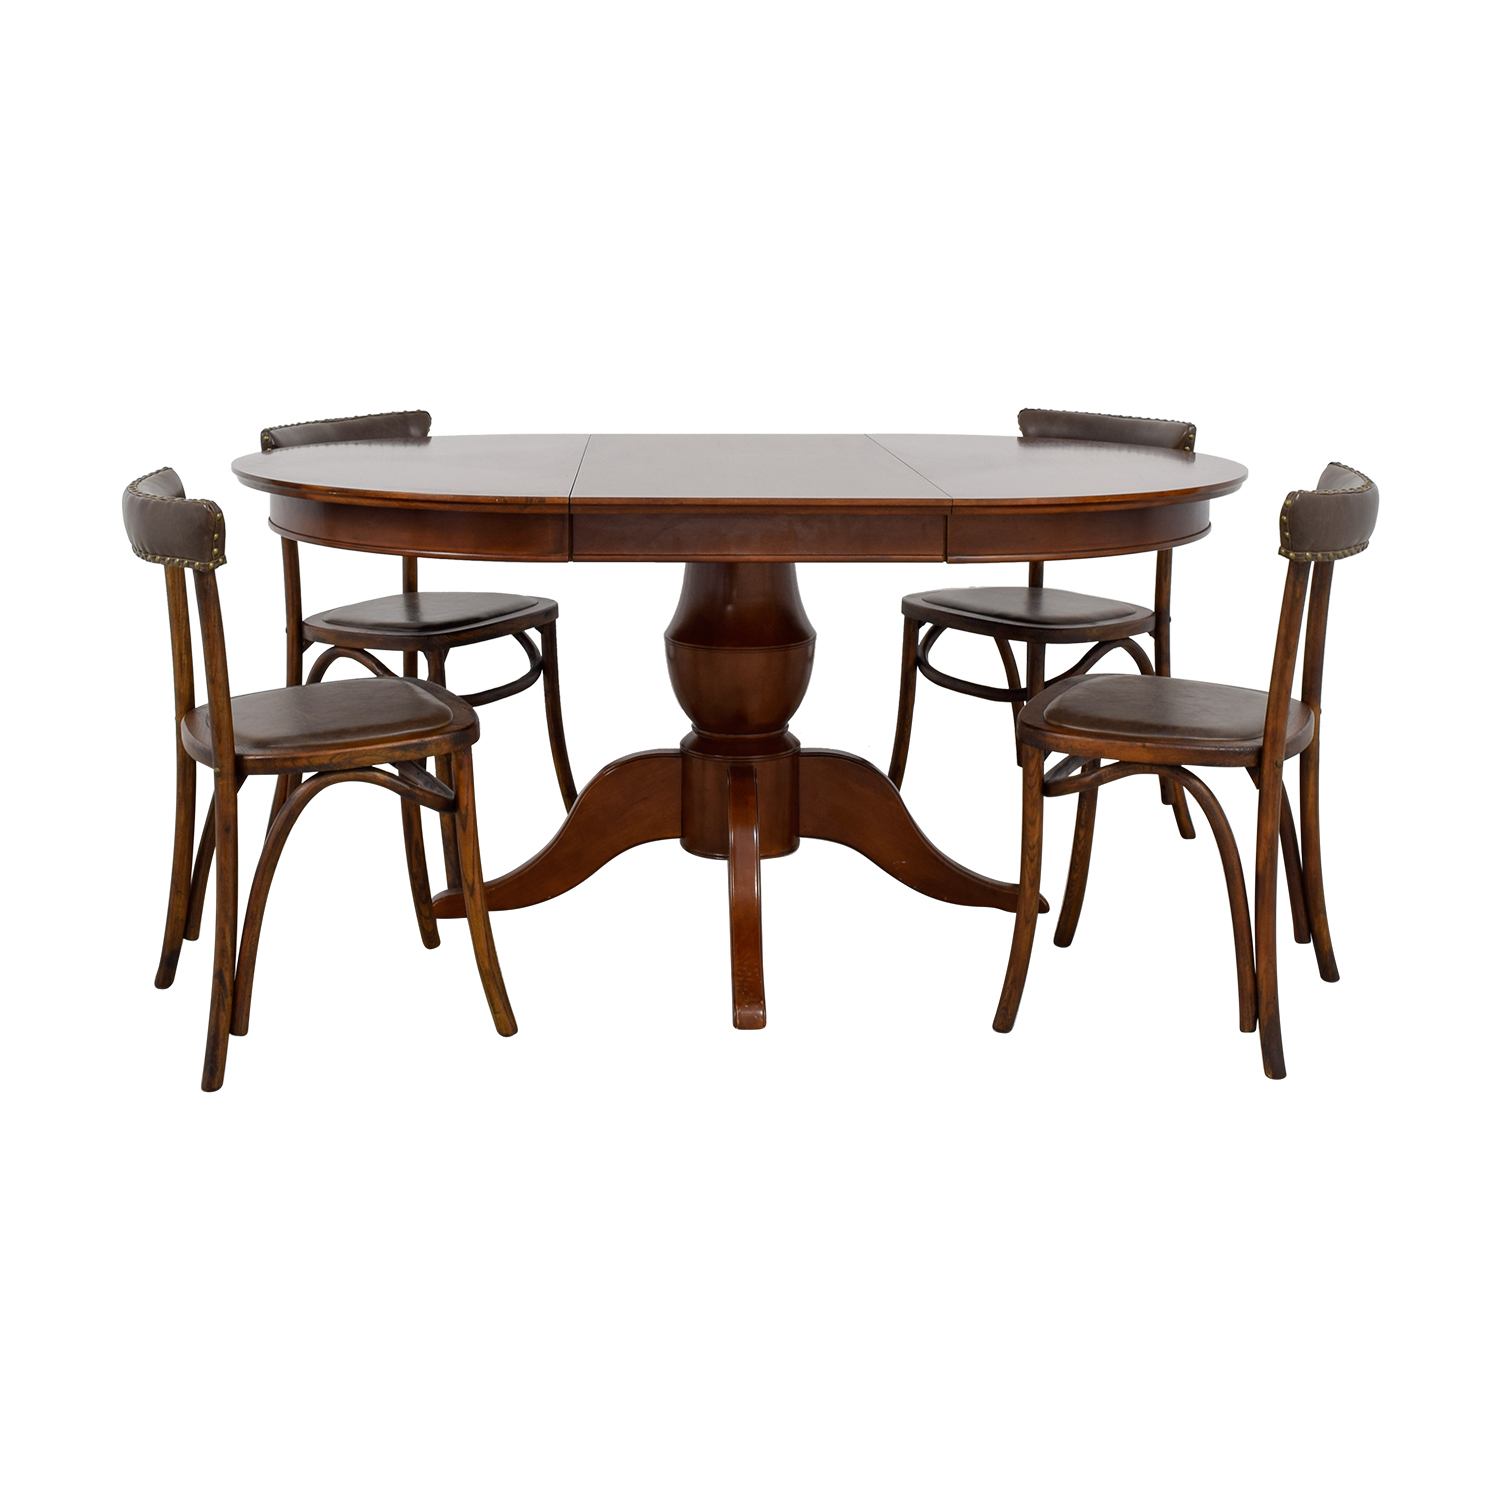 Pottery Barn Pottery Barn Round Spindle Table with Extension Leaf Dining Set price